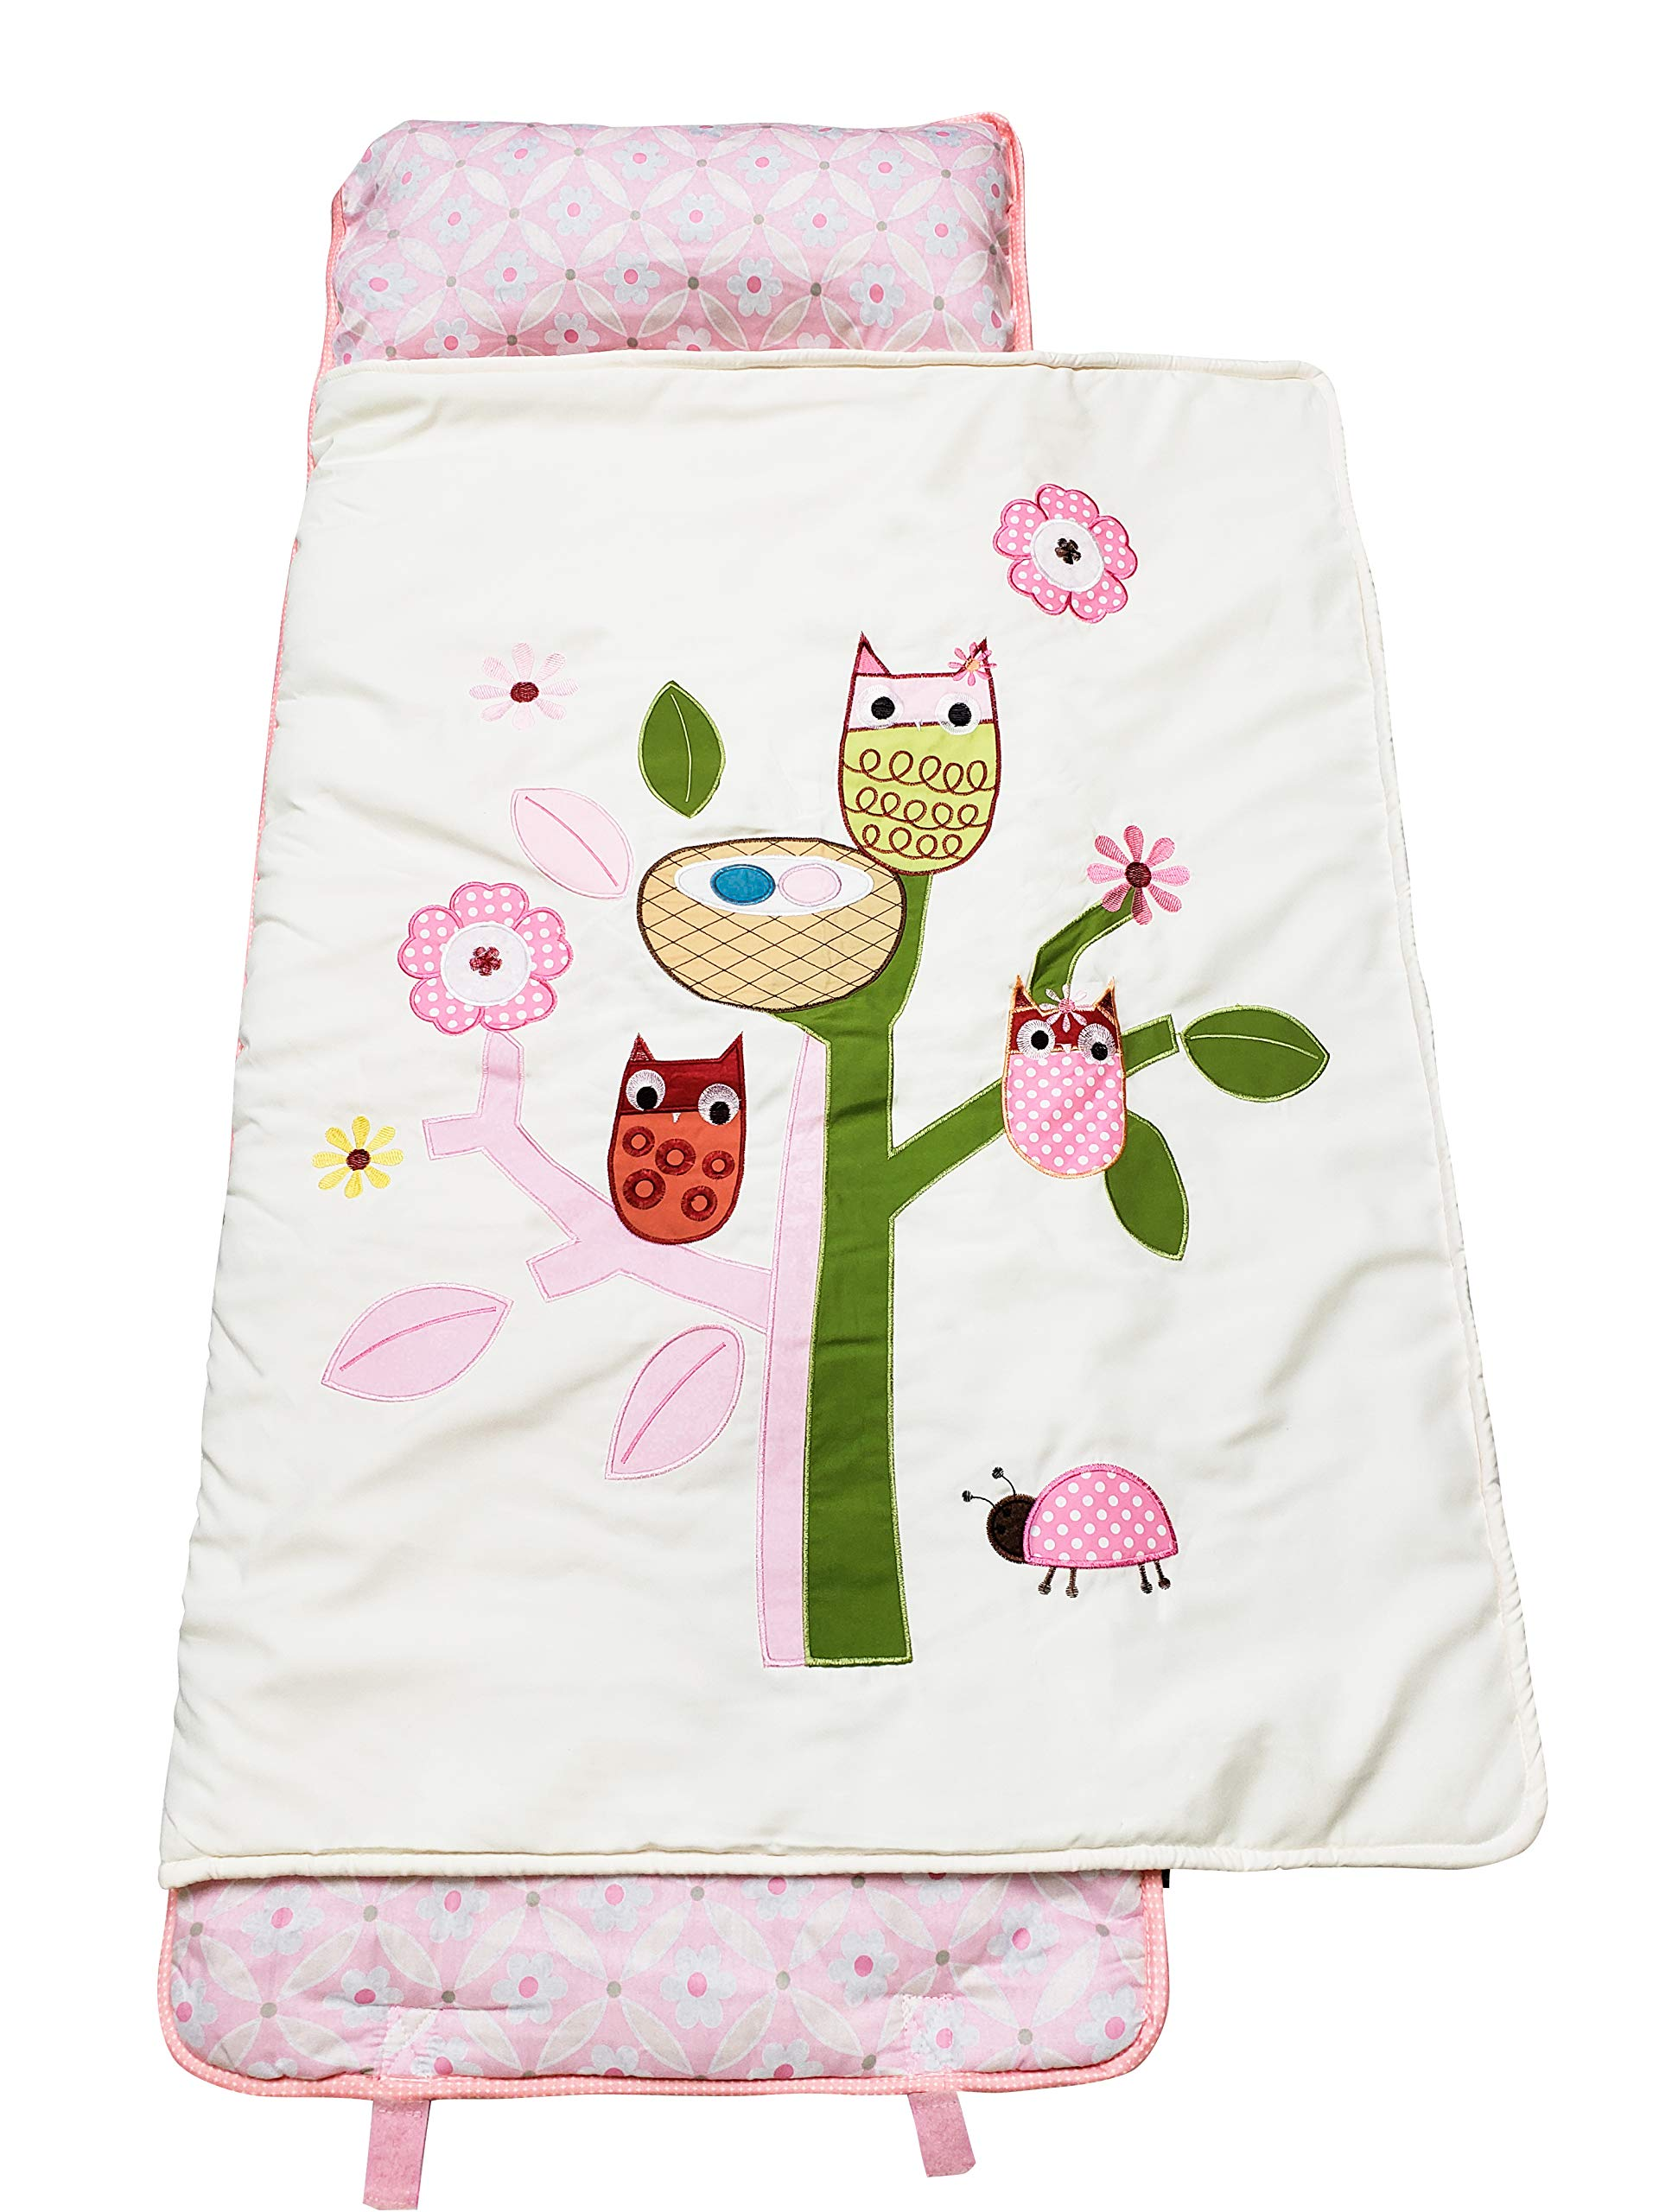 SoHo Nap Mat , Pink Owls Tree (All Hand Embroidery)